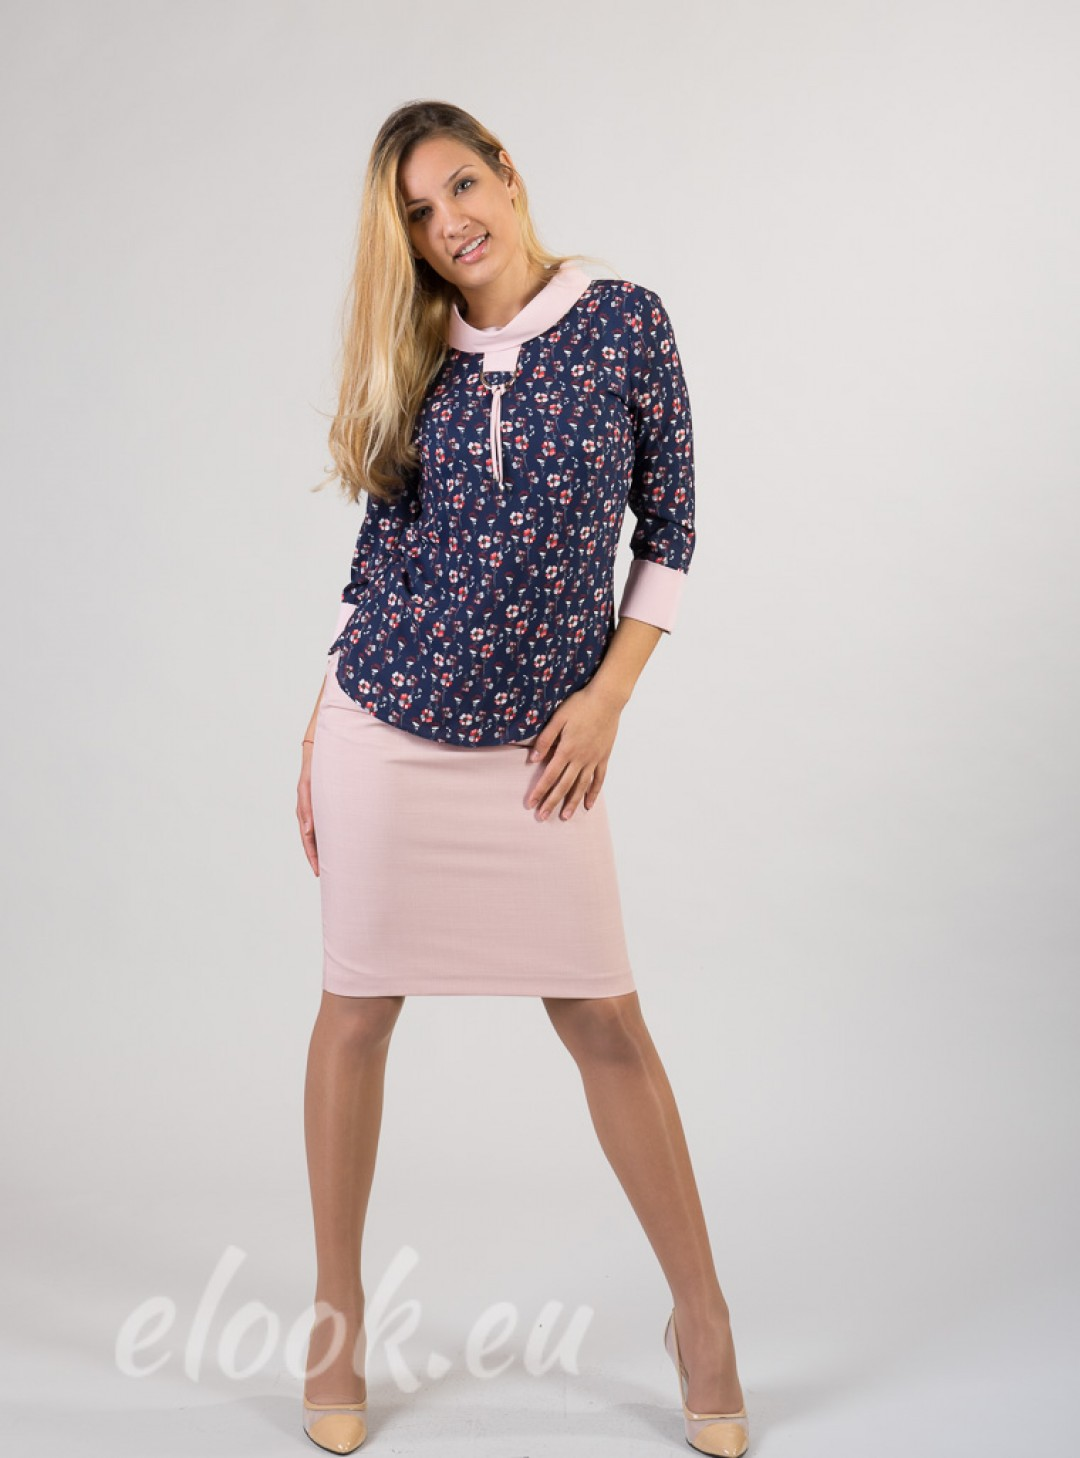 Blouse with 3/4 sleeves, a pri...